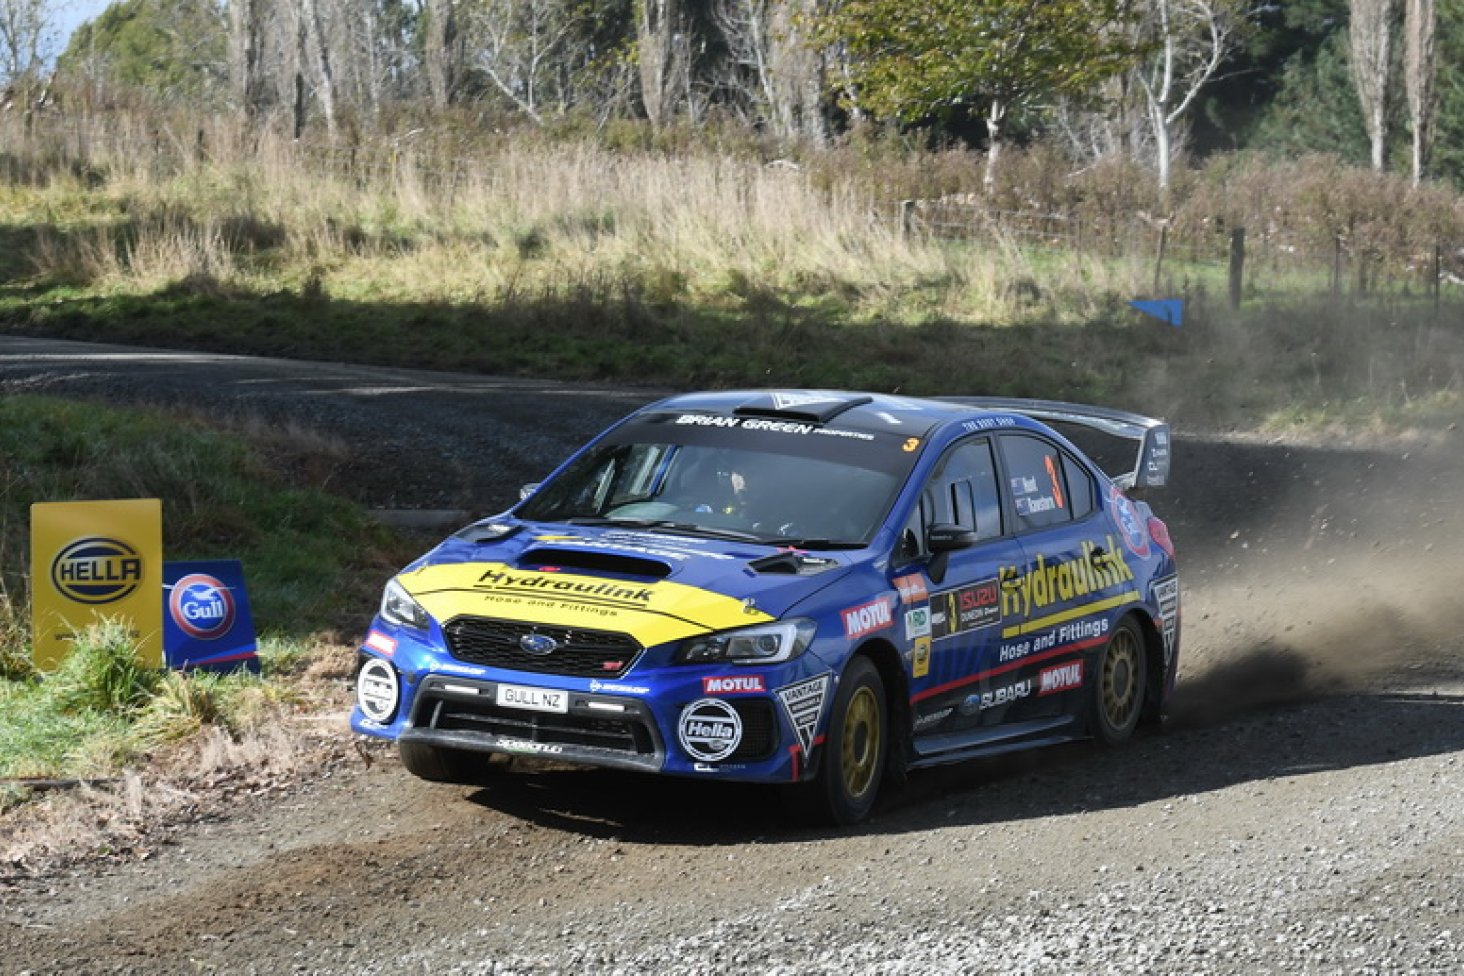 Subaru brand ambassador Ben Hunt and his co-driver Tony Rawstorn had a strong run in the Subaru WRX STi to finish second in the Drivesouth Rally of Otago this weekend. PHOTOS: GEOFF RIDDER